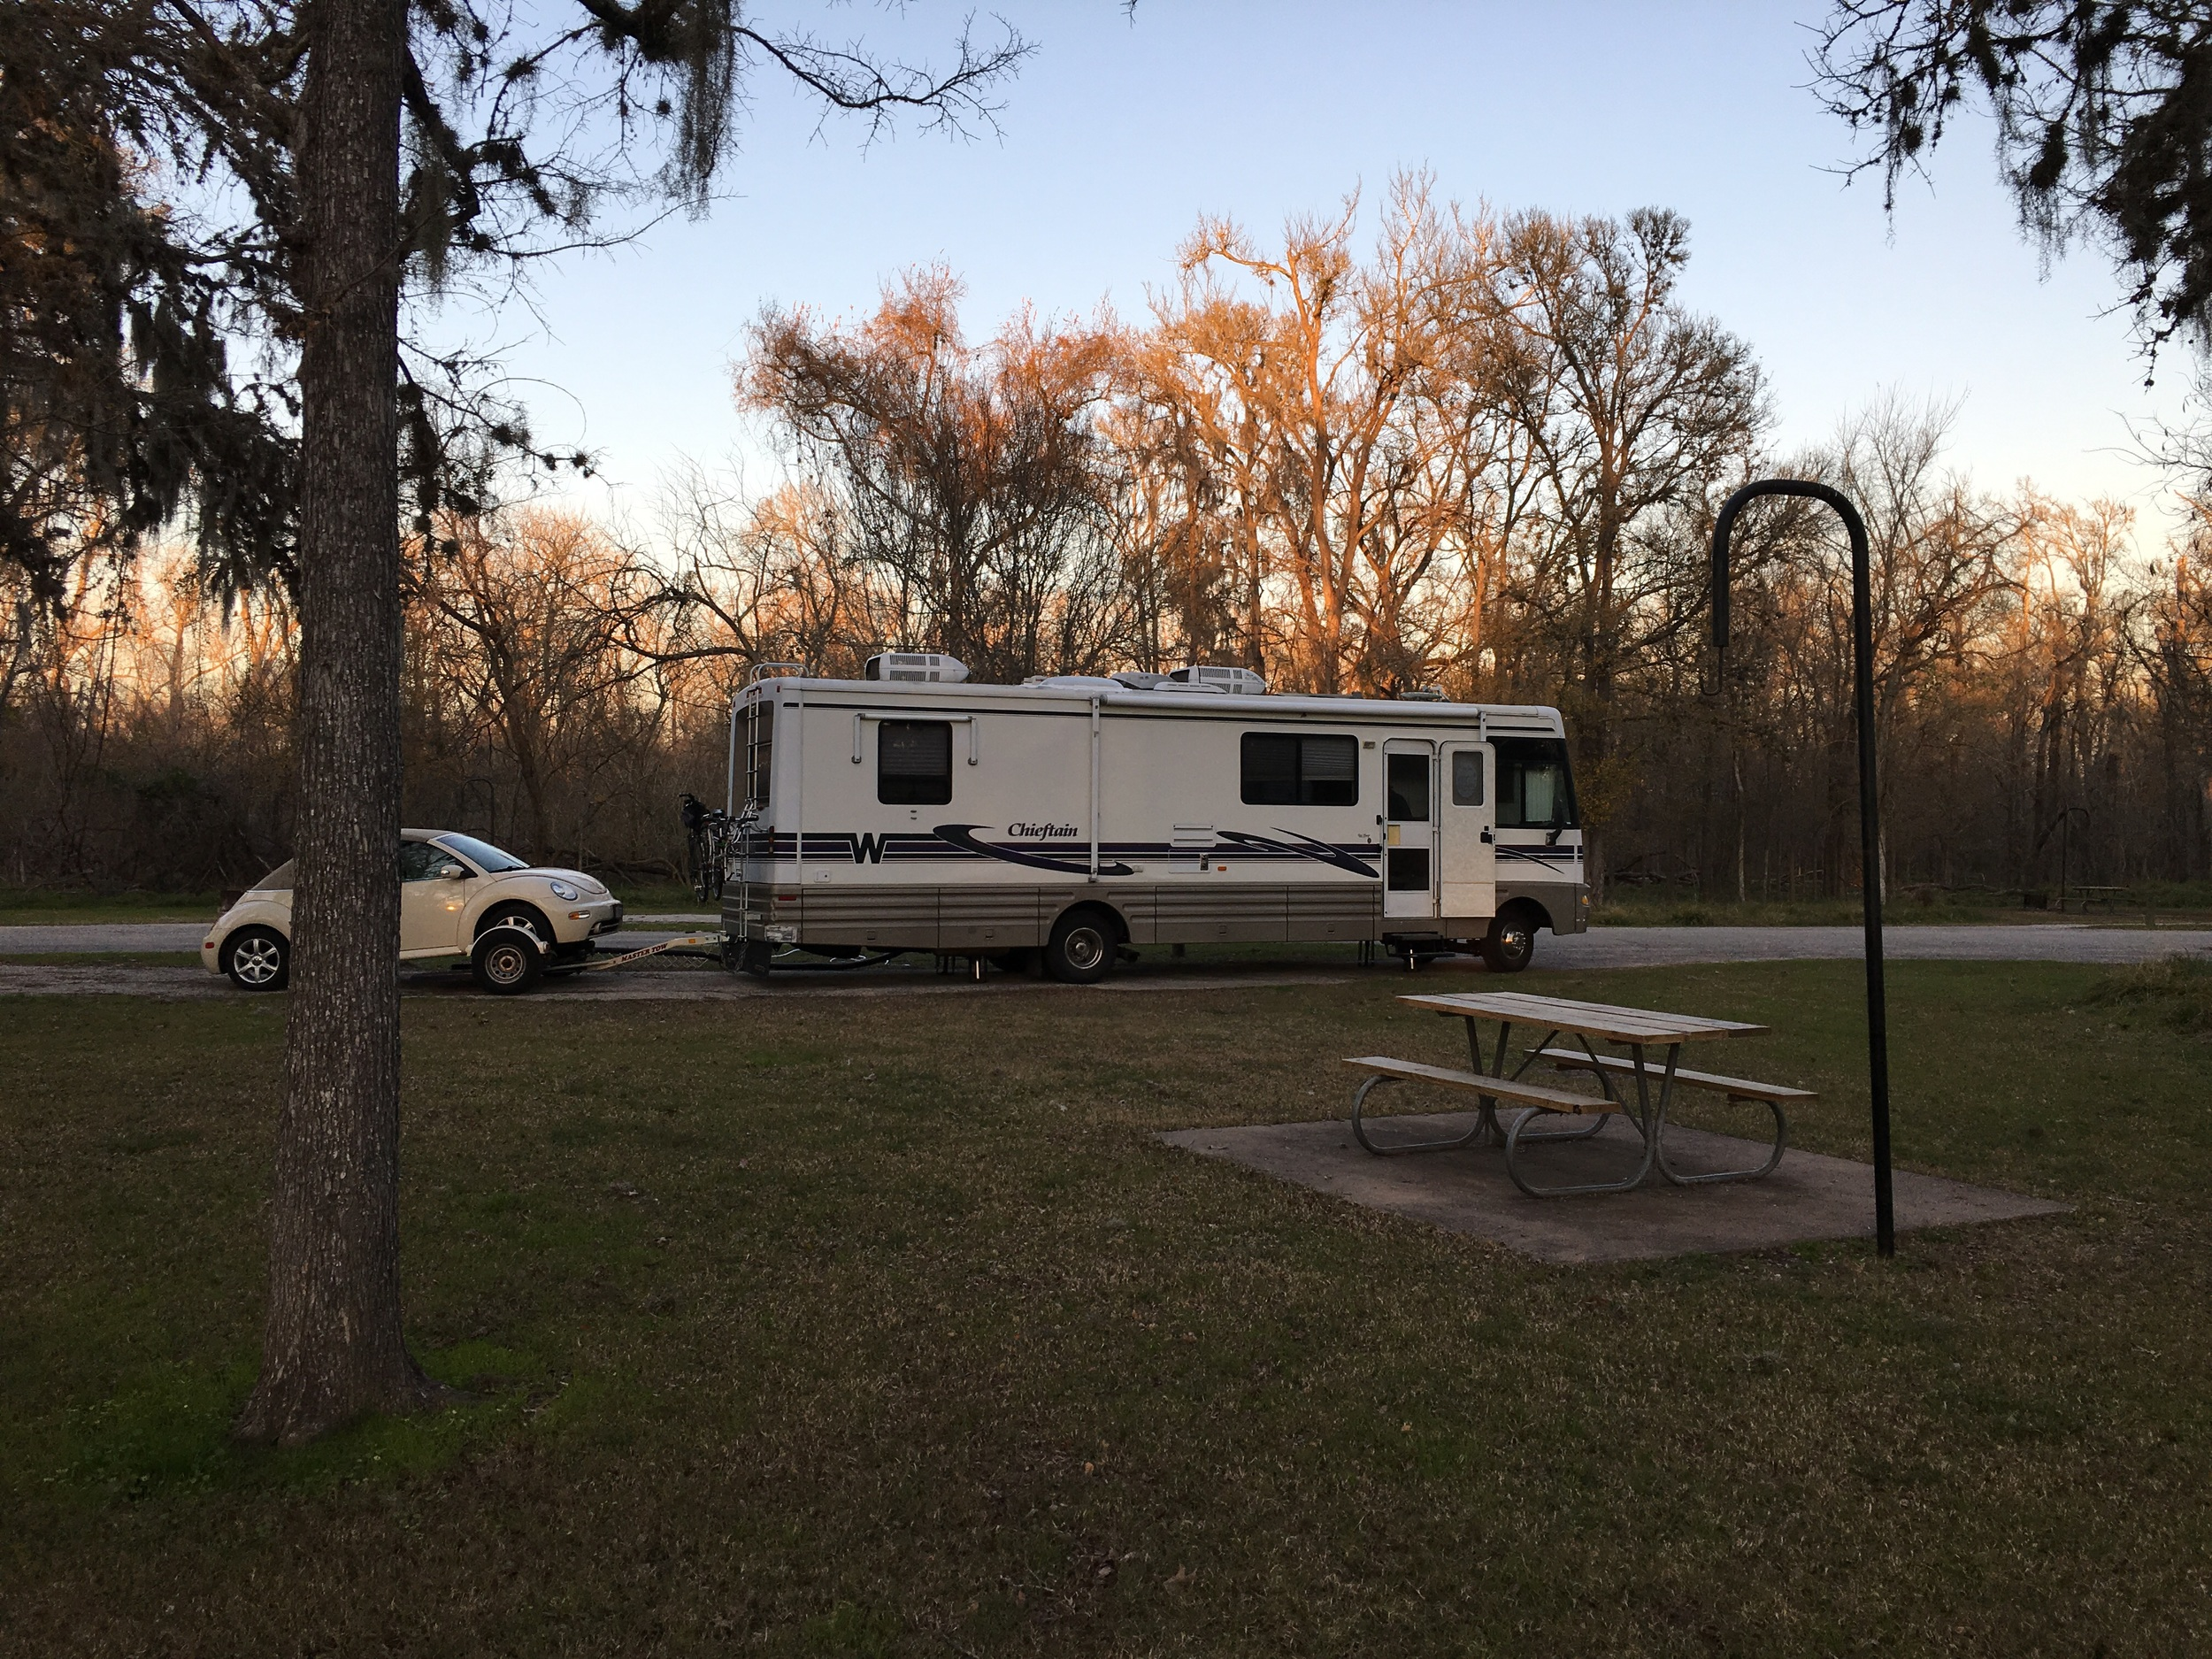 We are camped for the night at Steve Austin State park in San Felipe, Texas.